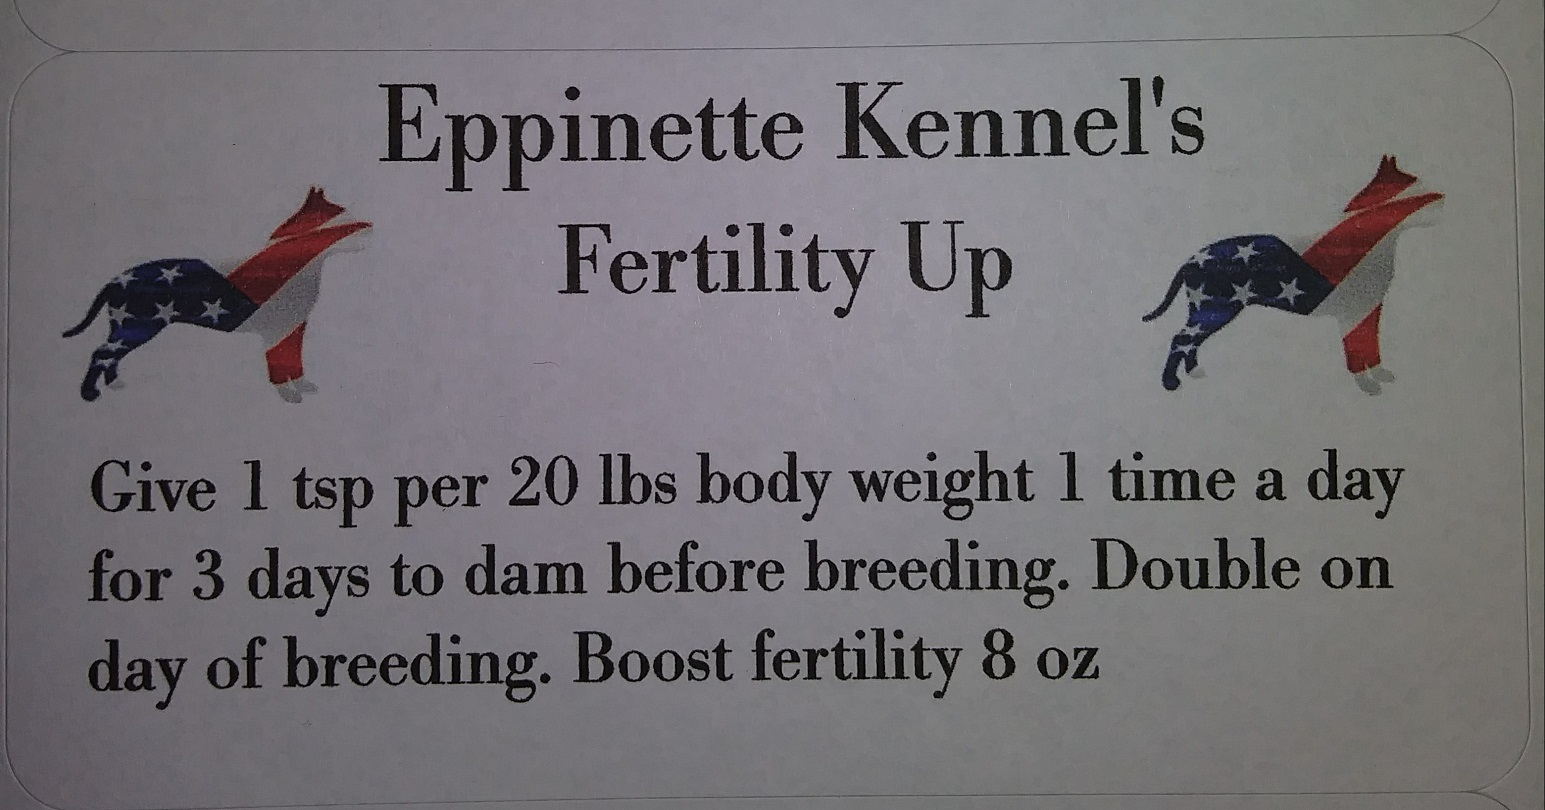 FERTILITY BOOST UP